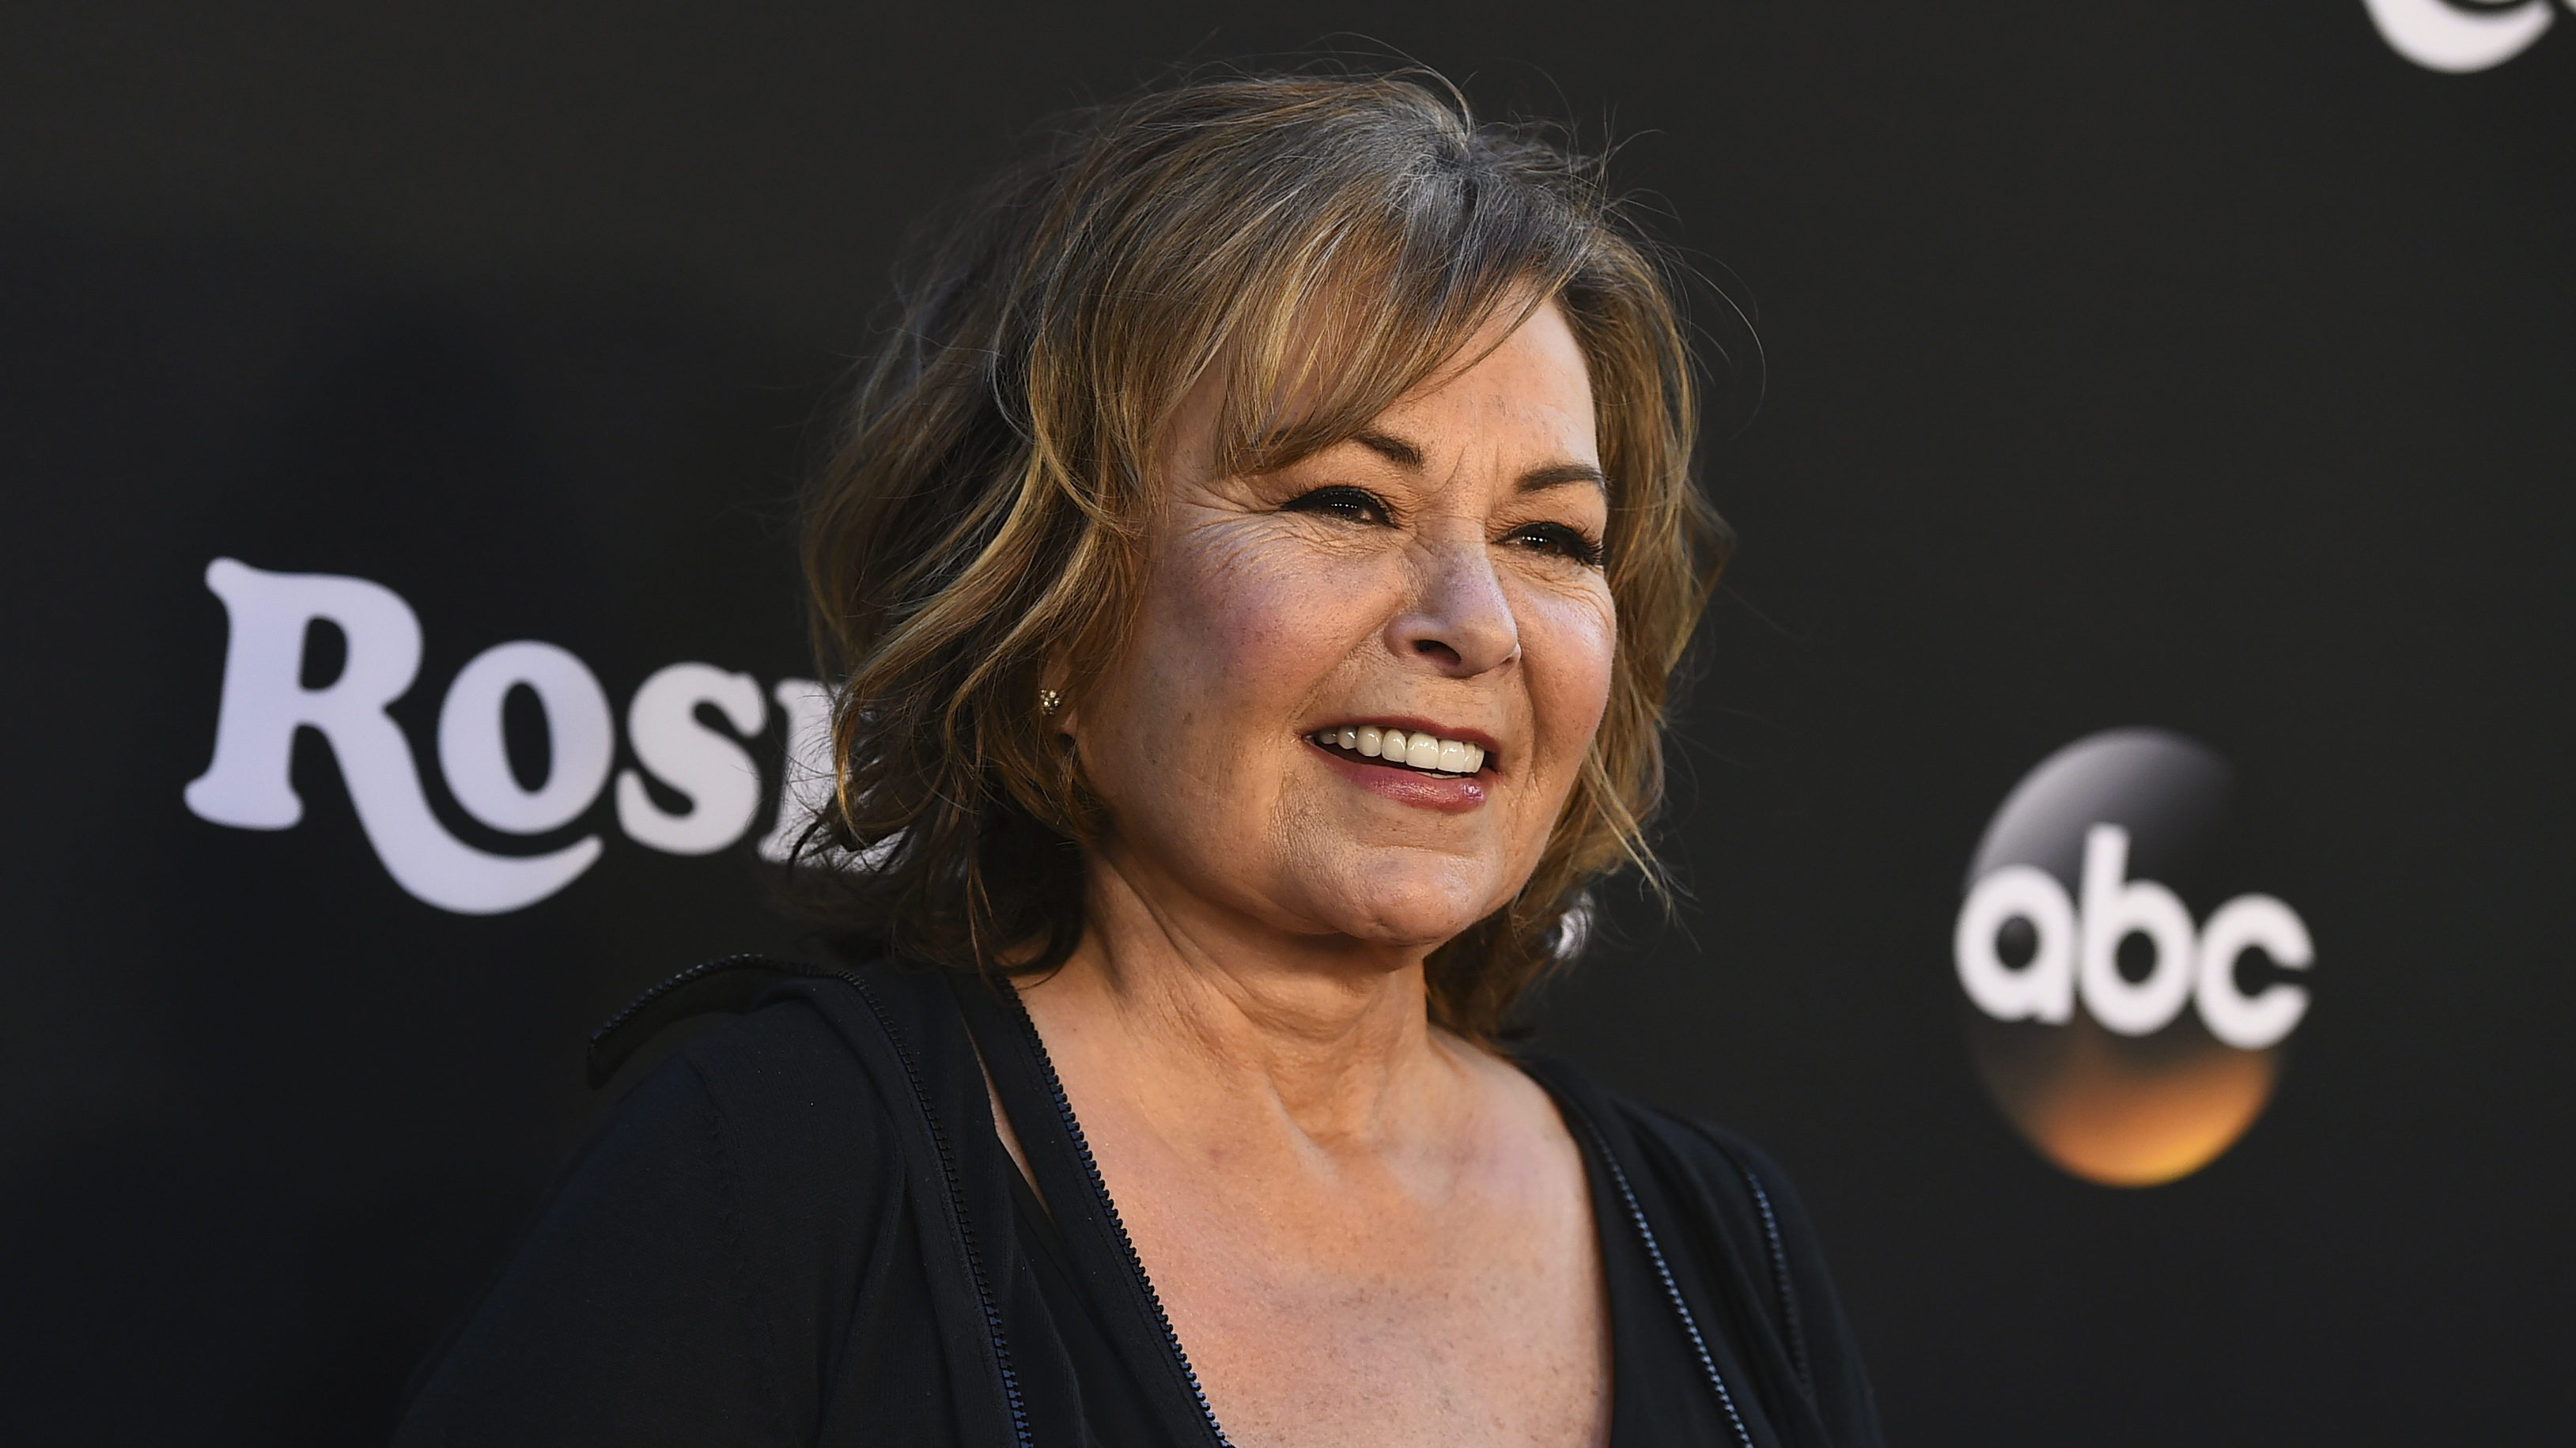 The actress Roseanne Barr at a premier.